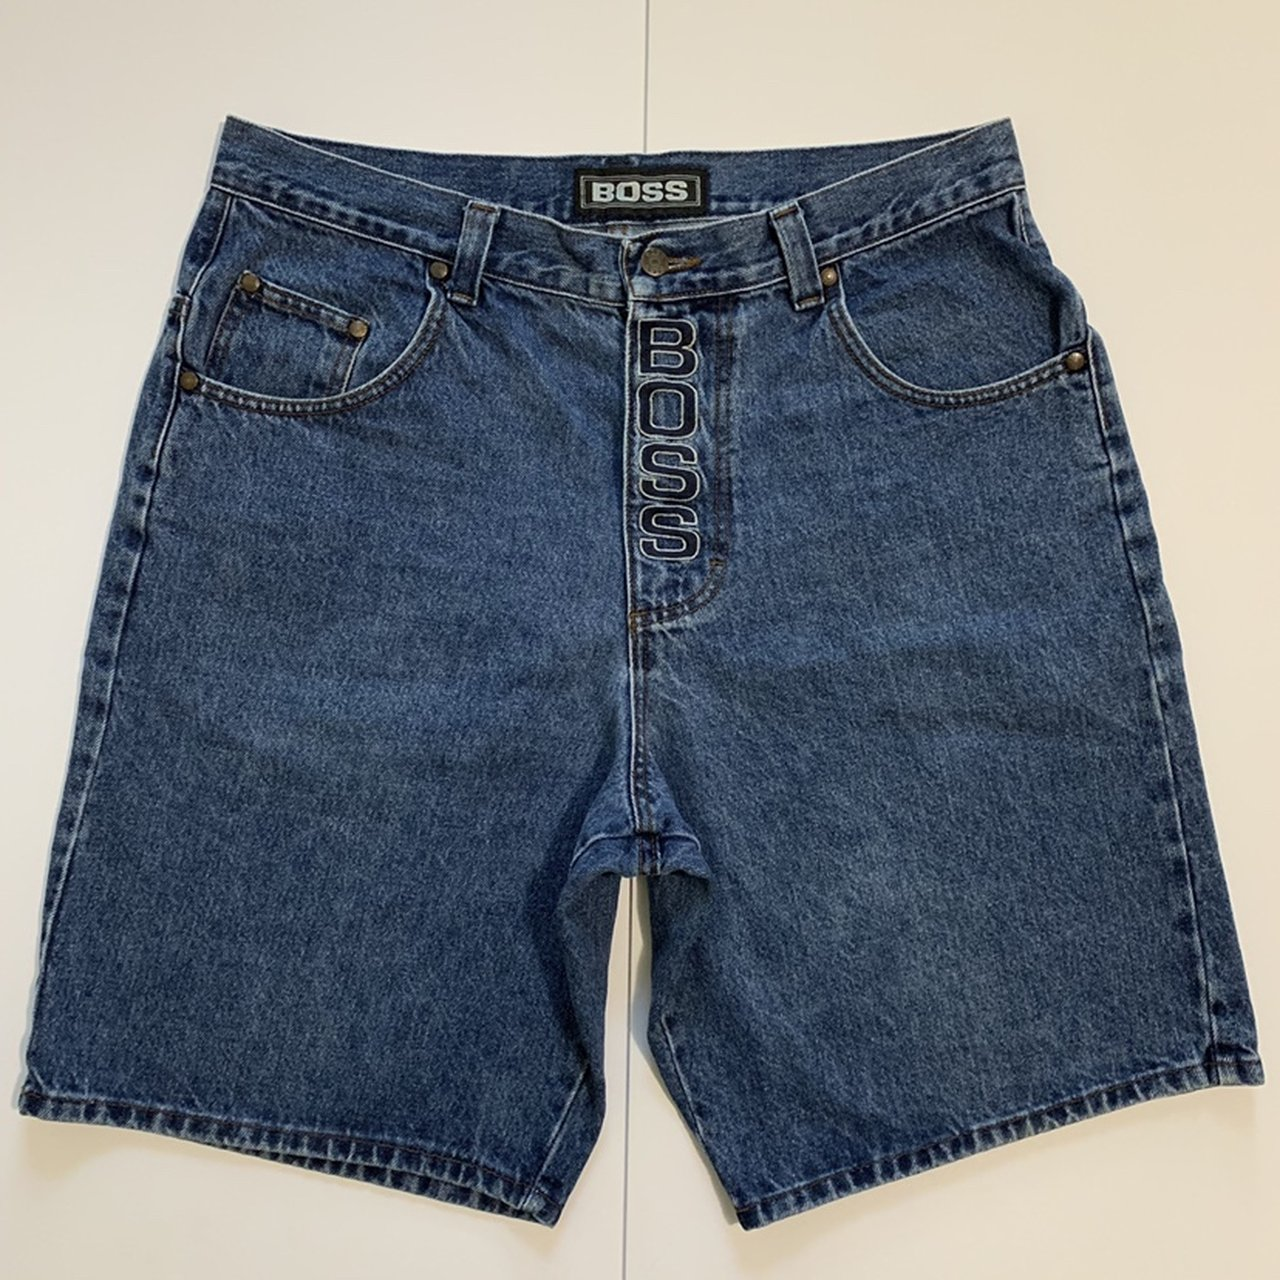 2c257e0ff Vintage 90's BOSS Denim Jean Shorts Size 36 Embroidered on - Depop